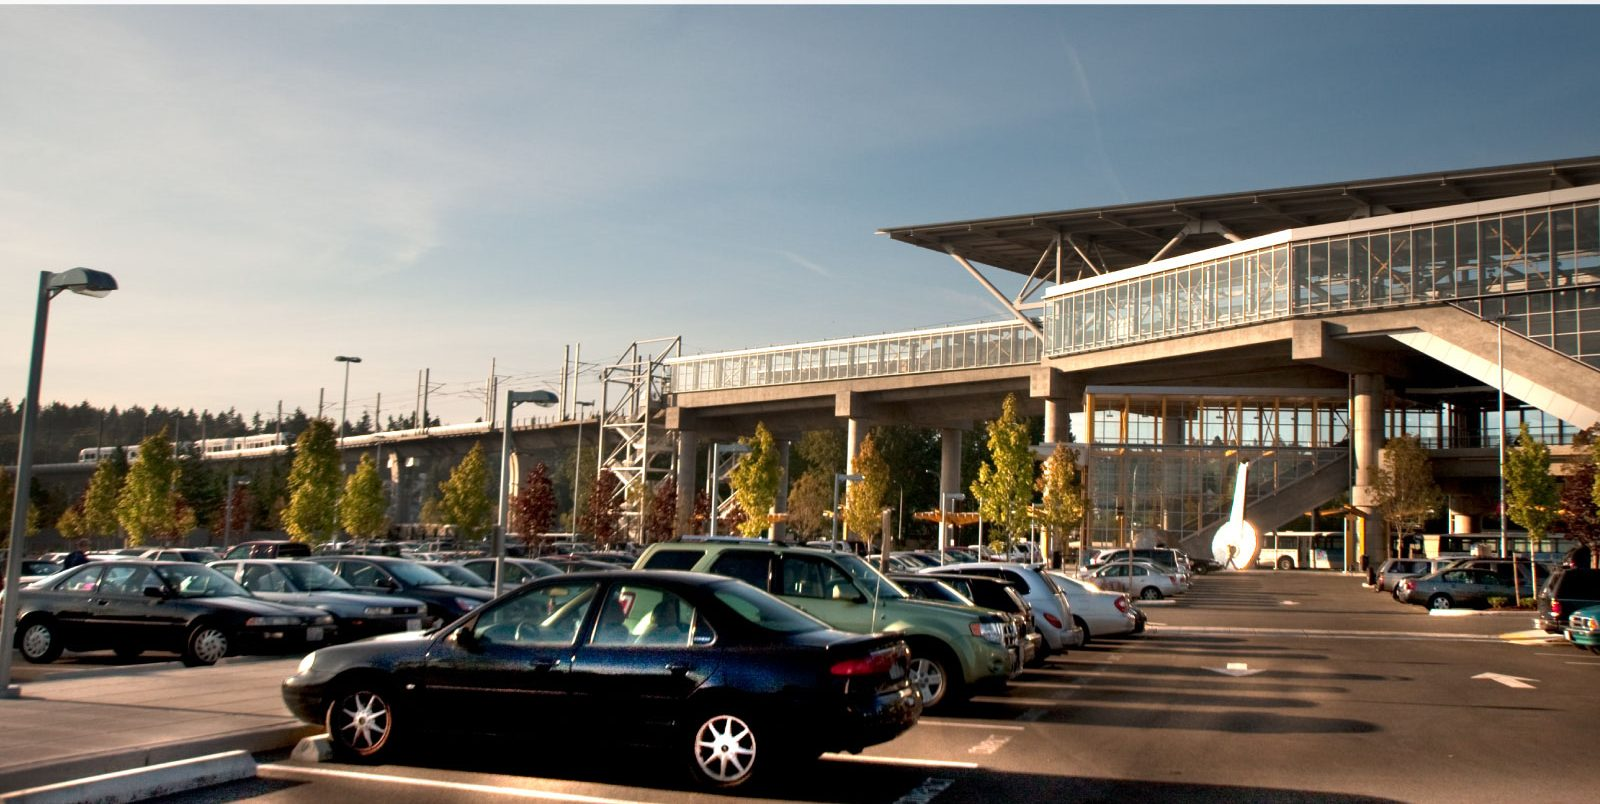 Sound Transit Expands Permit Parking at Its Park-and-Rides